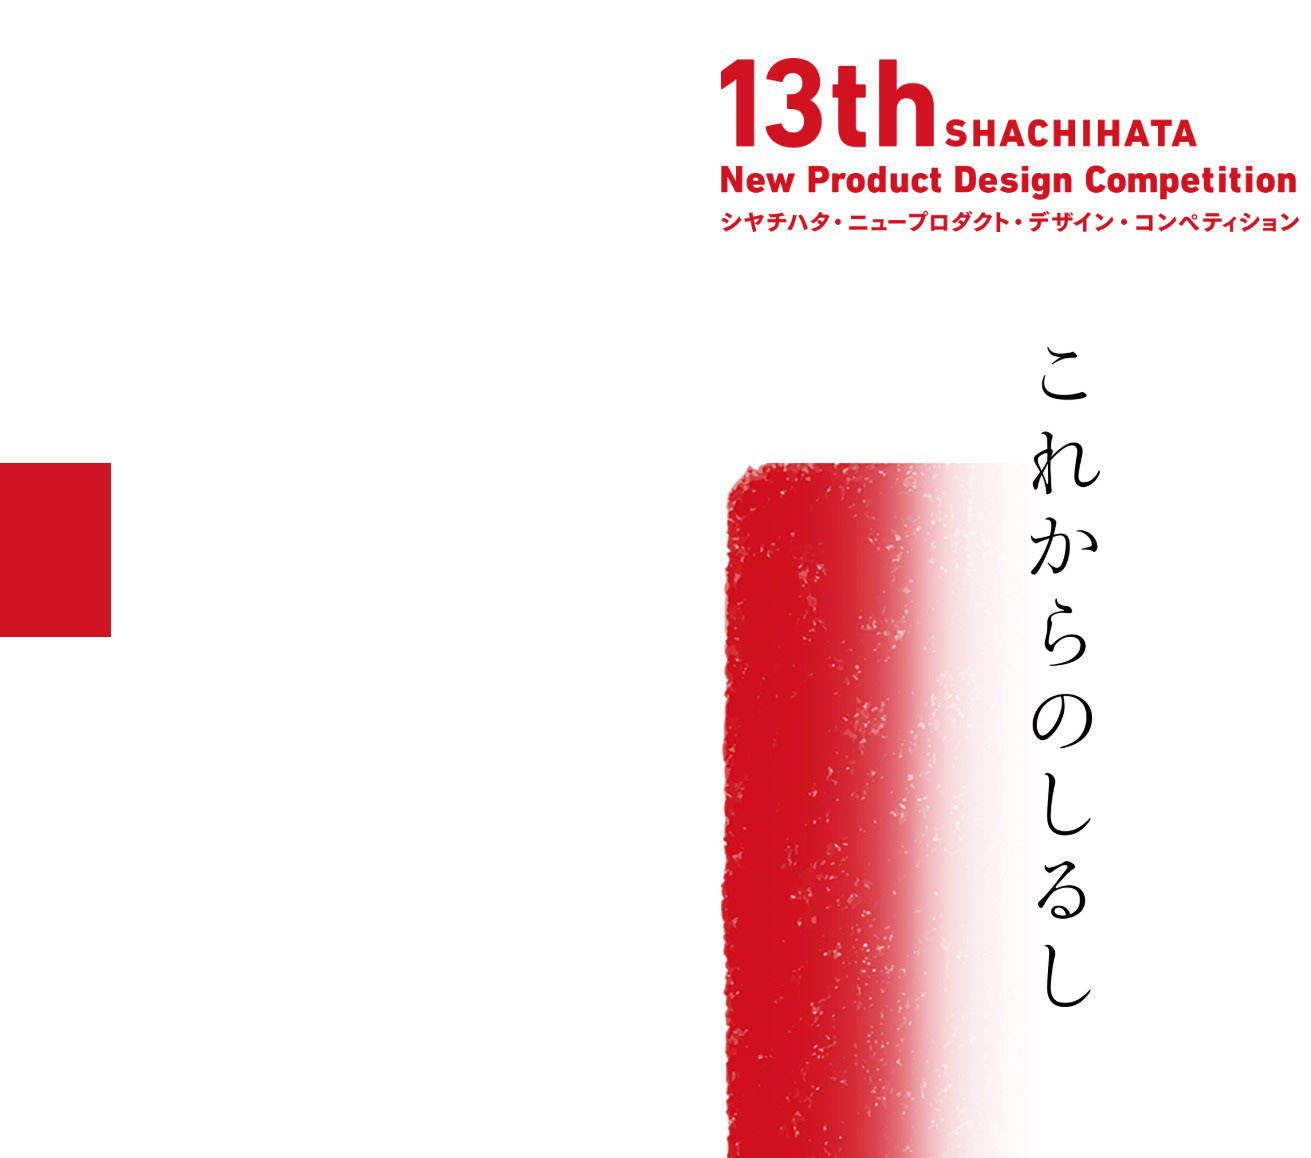 2020 13th SHACHIHATA New Product Design Competision